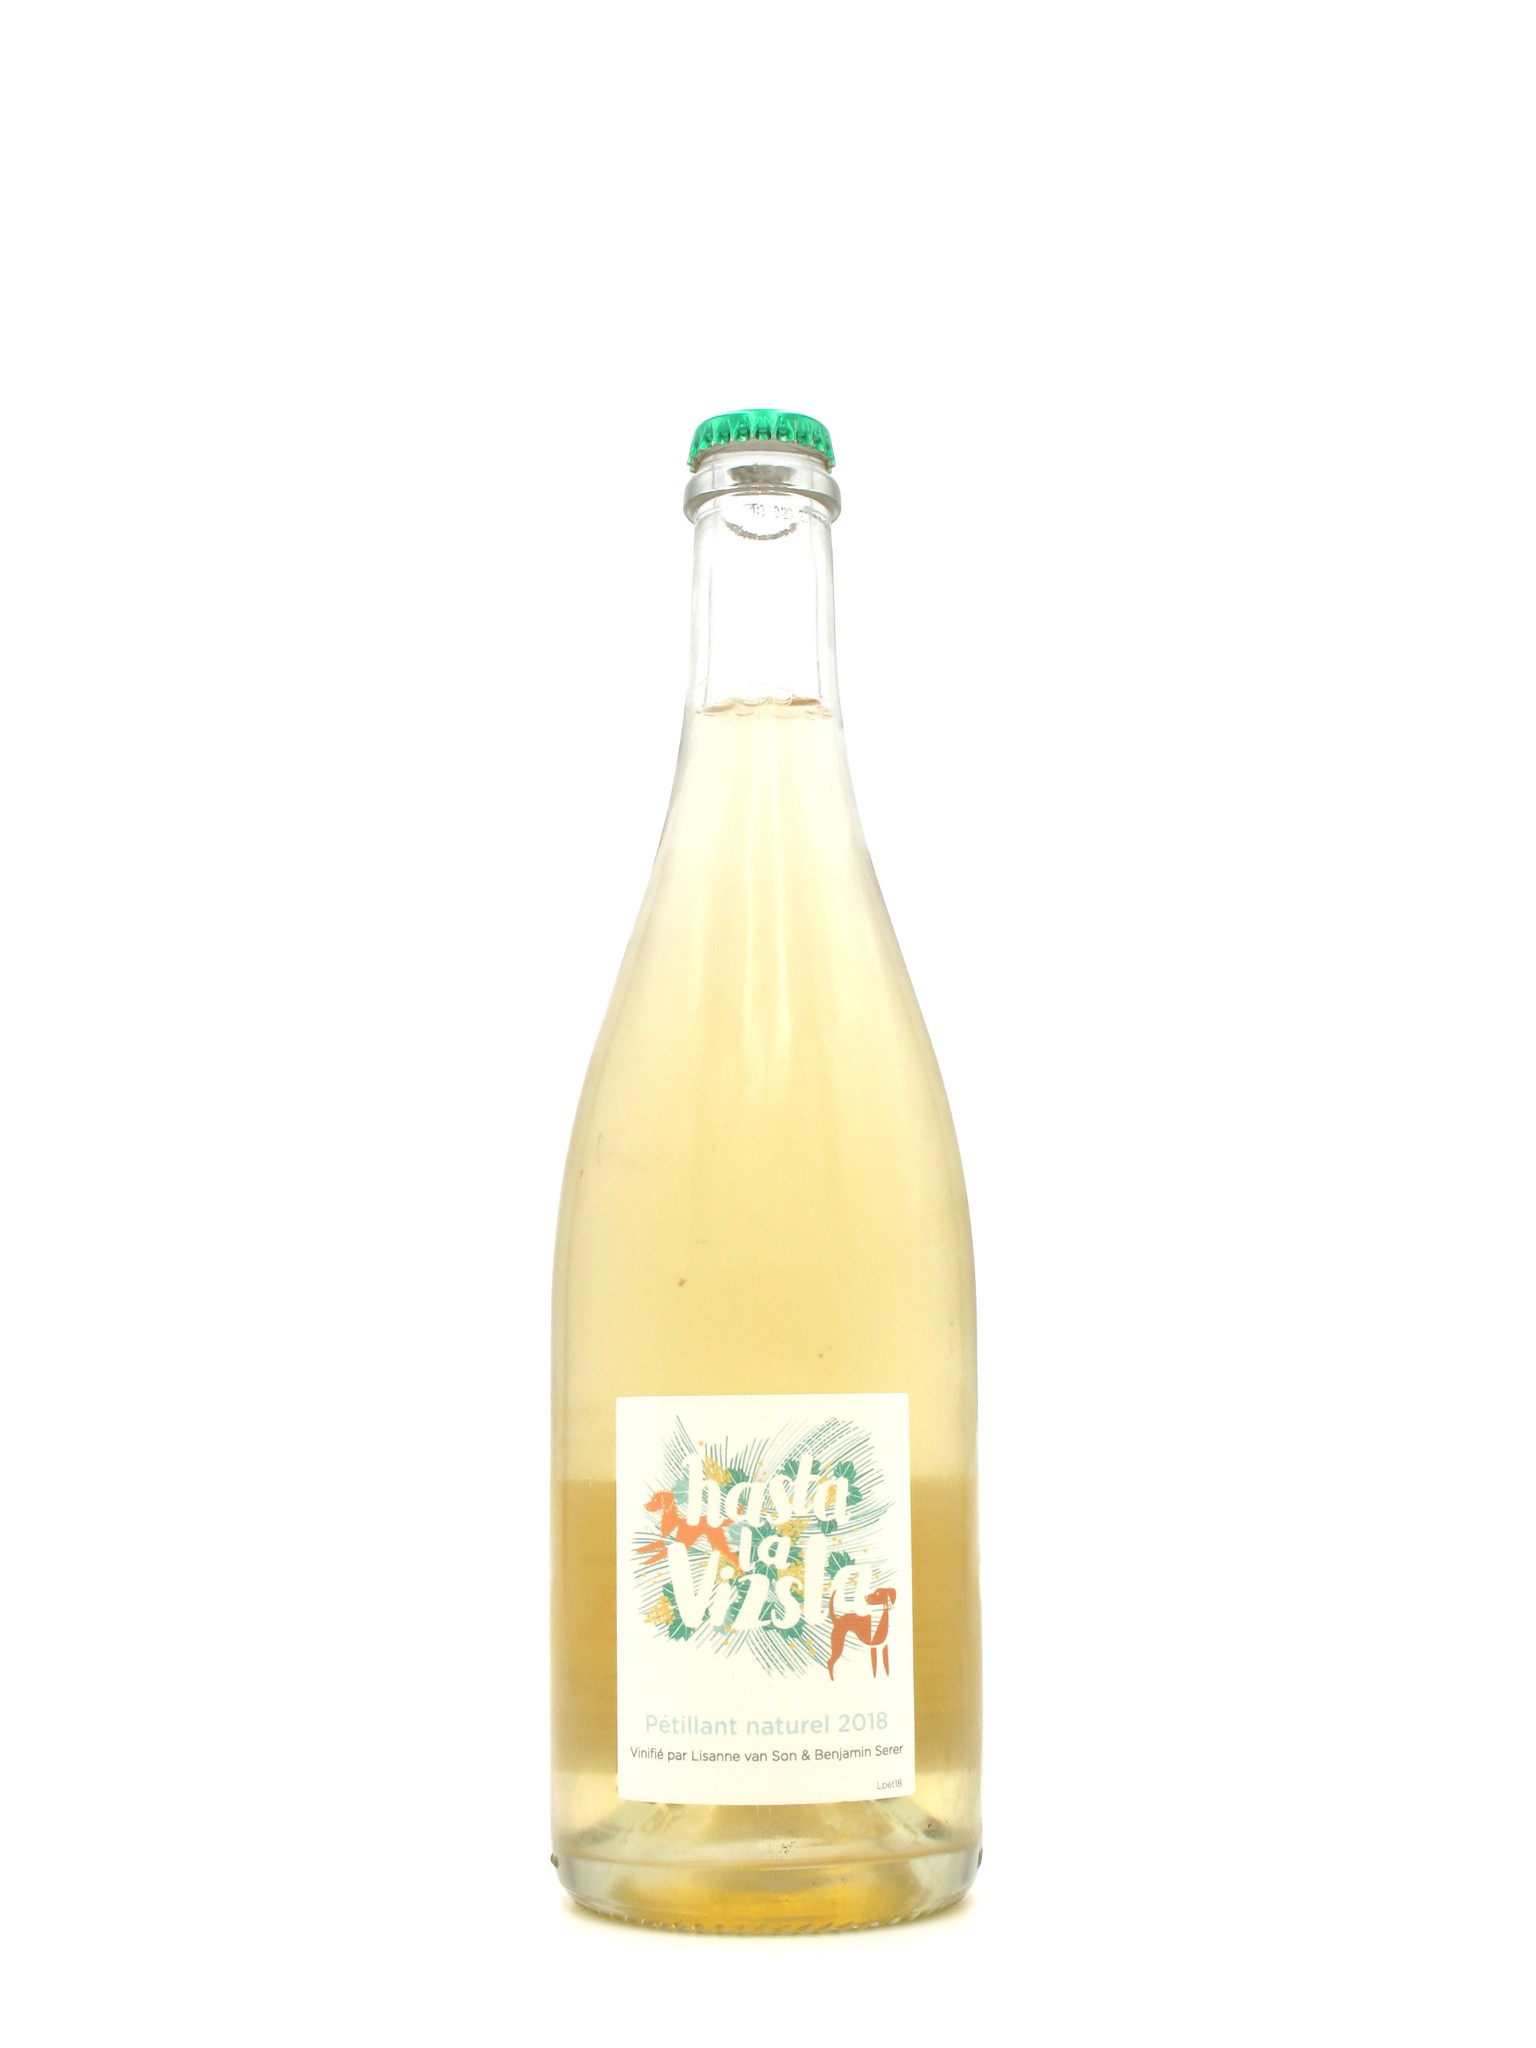 Sonser Sonser 'Hasta La Vizsla' Petillant Naturel 2018 750ml